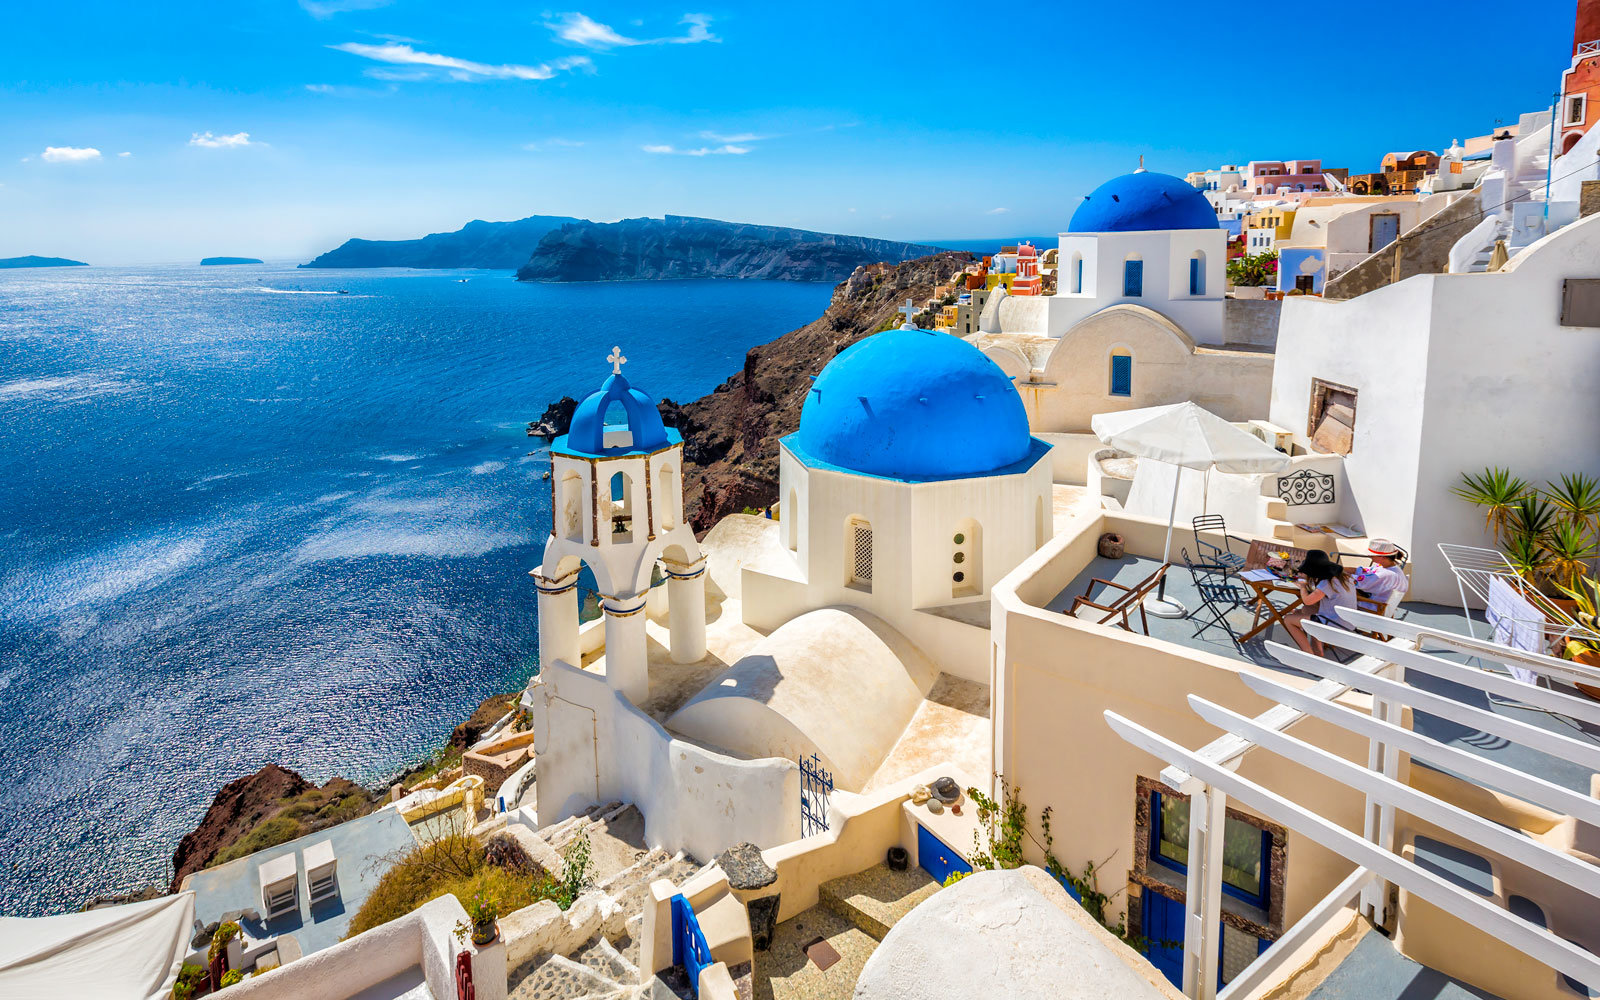 How To Sail Through Europe For Half The Price This Summer